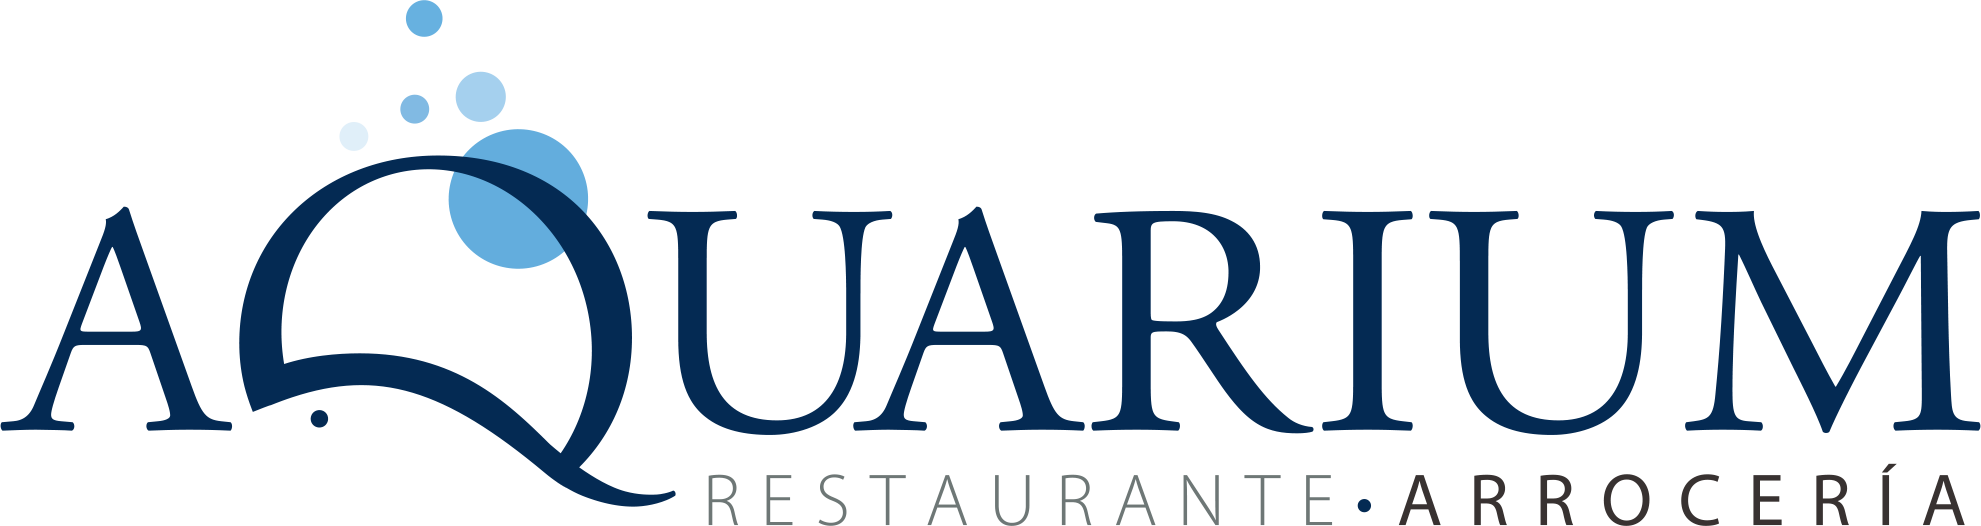 Aquariumrestaurante